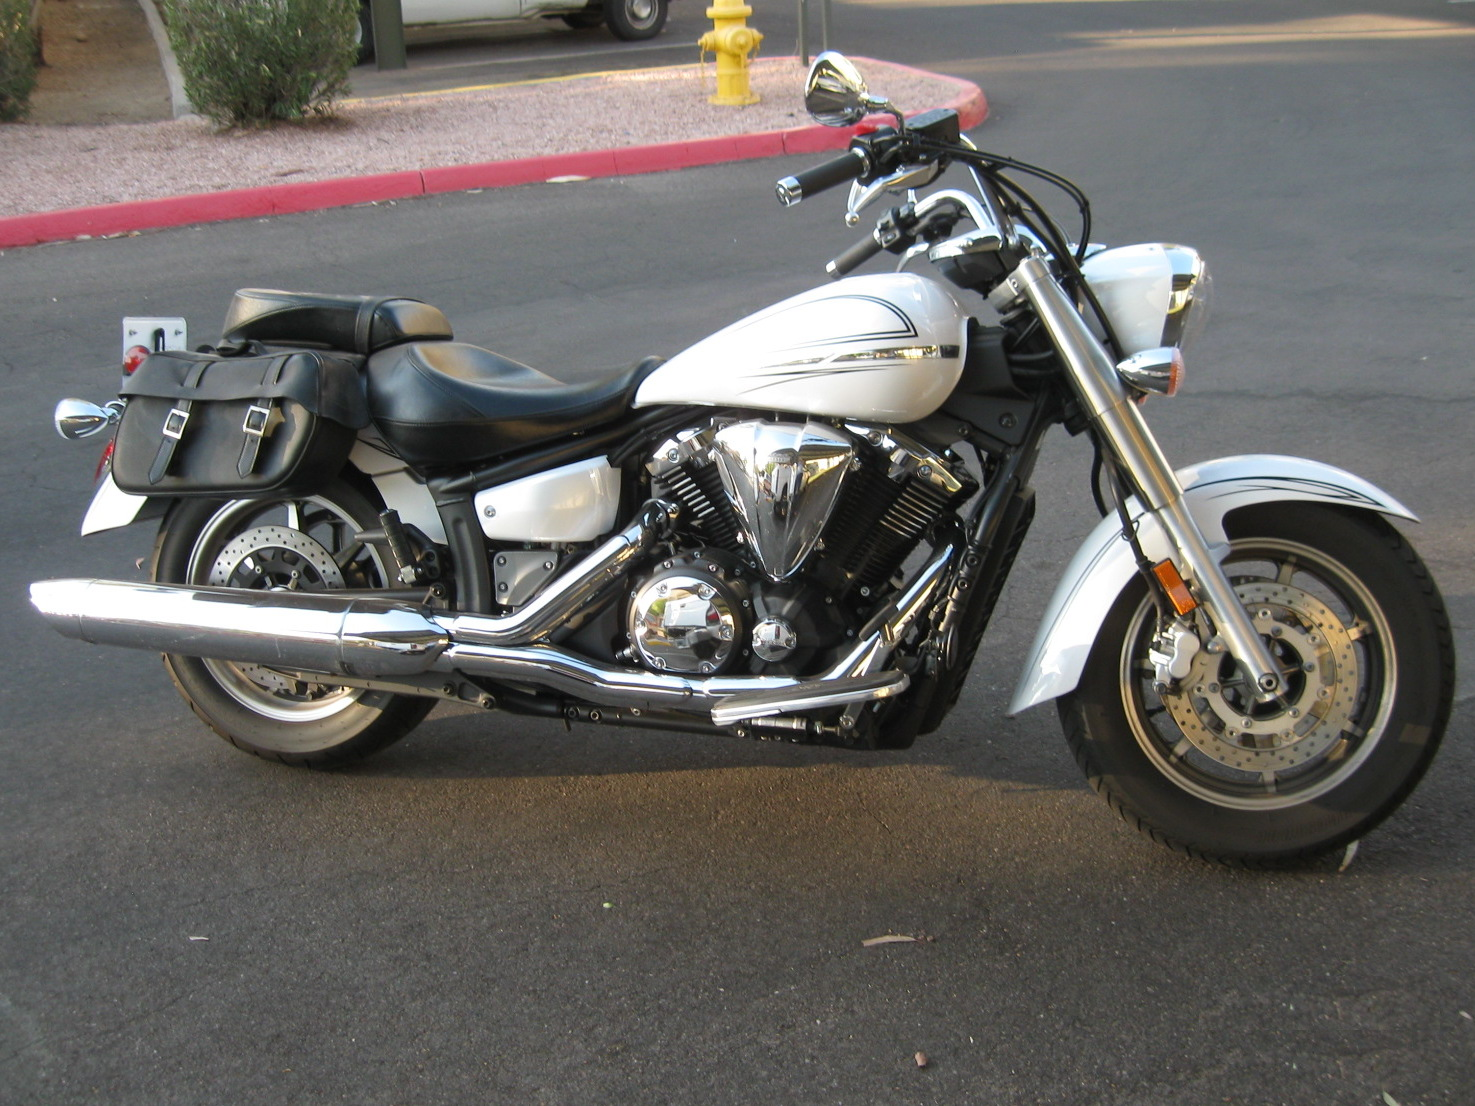 Yamaha V Star 1300 - Wikipedia